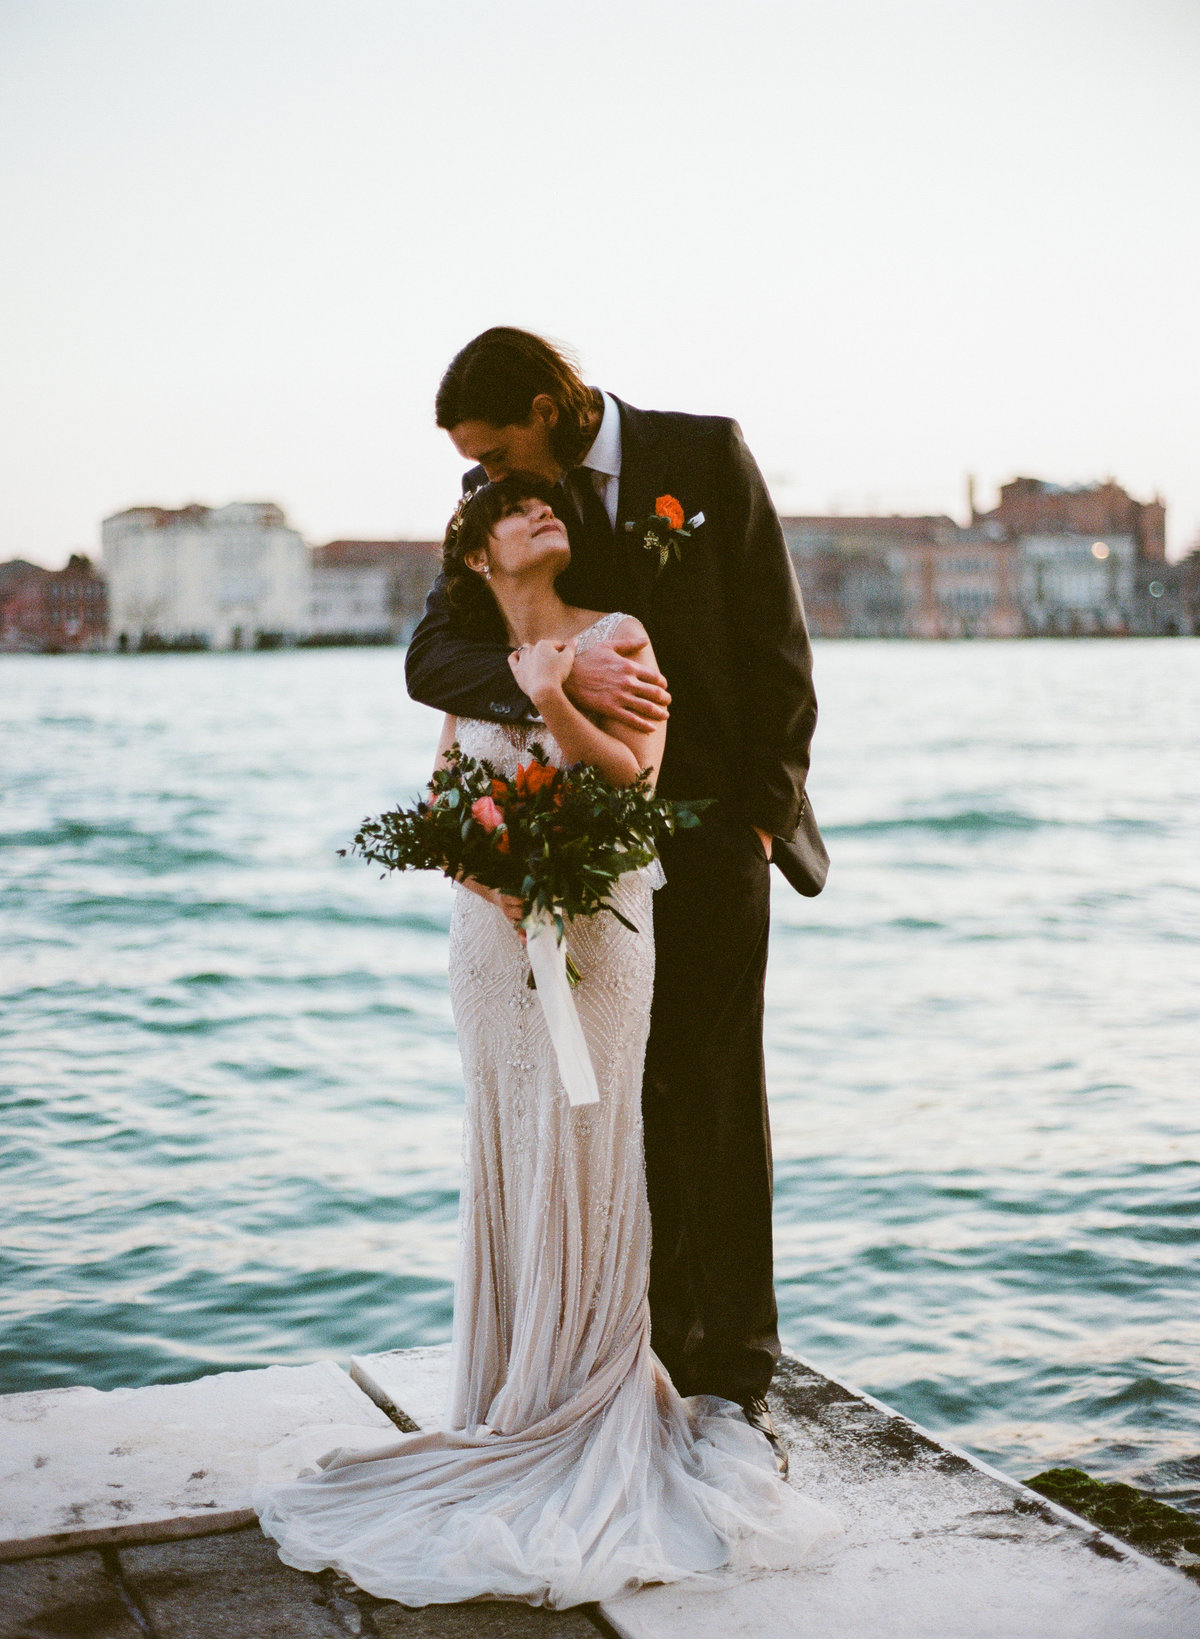 venice italy destination wedding elopement sunset over the grand canal photographer